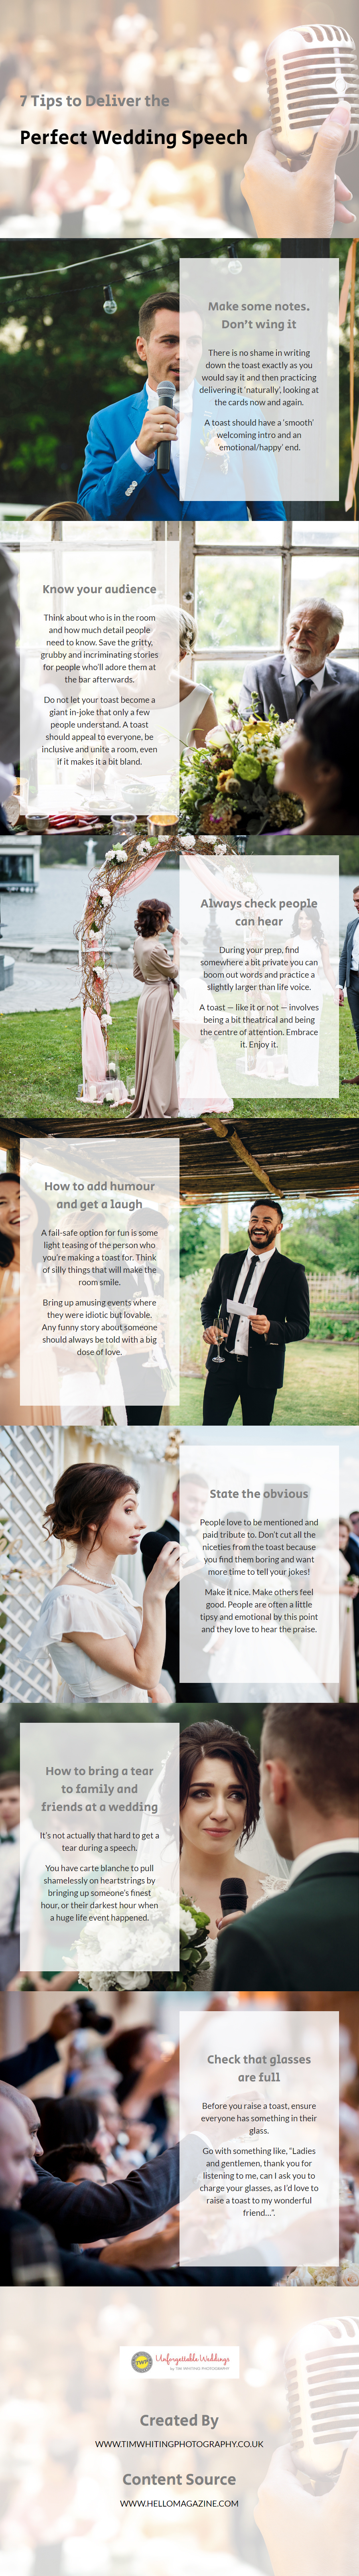 7 Tips to Deliver the Perfect Wedding Speech.jpg